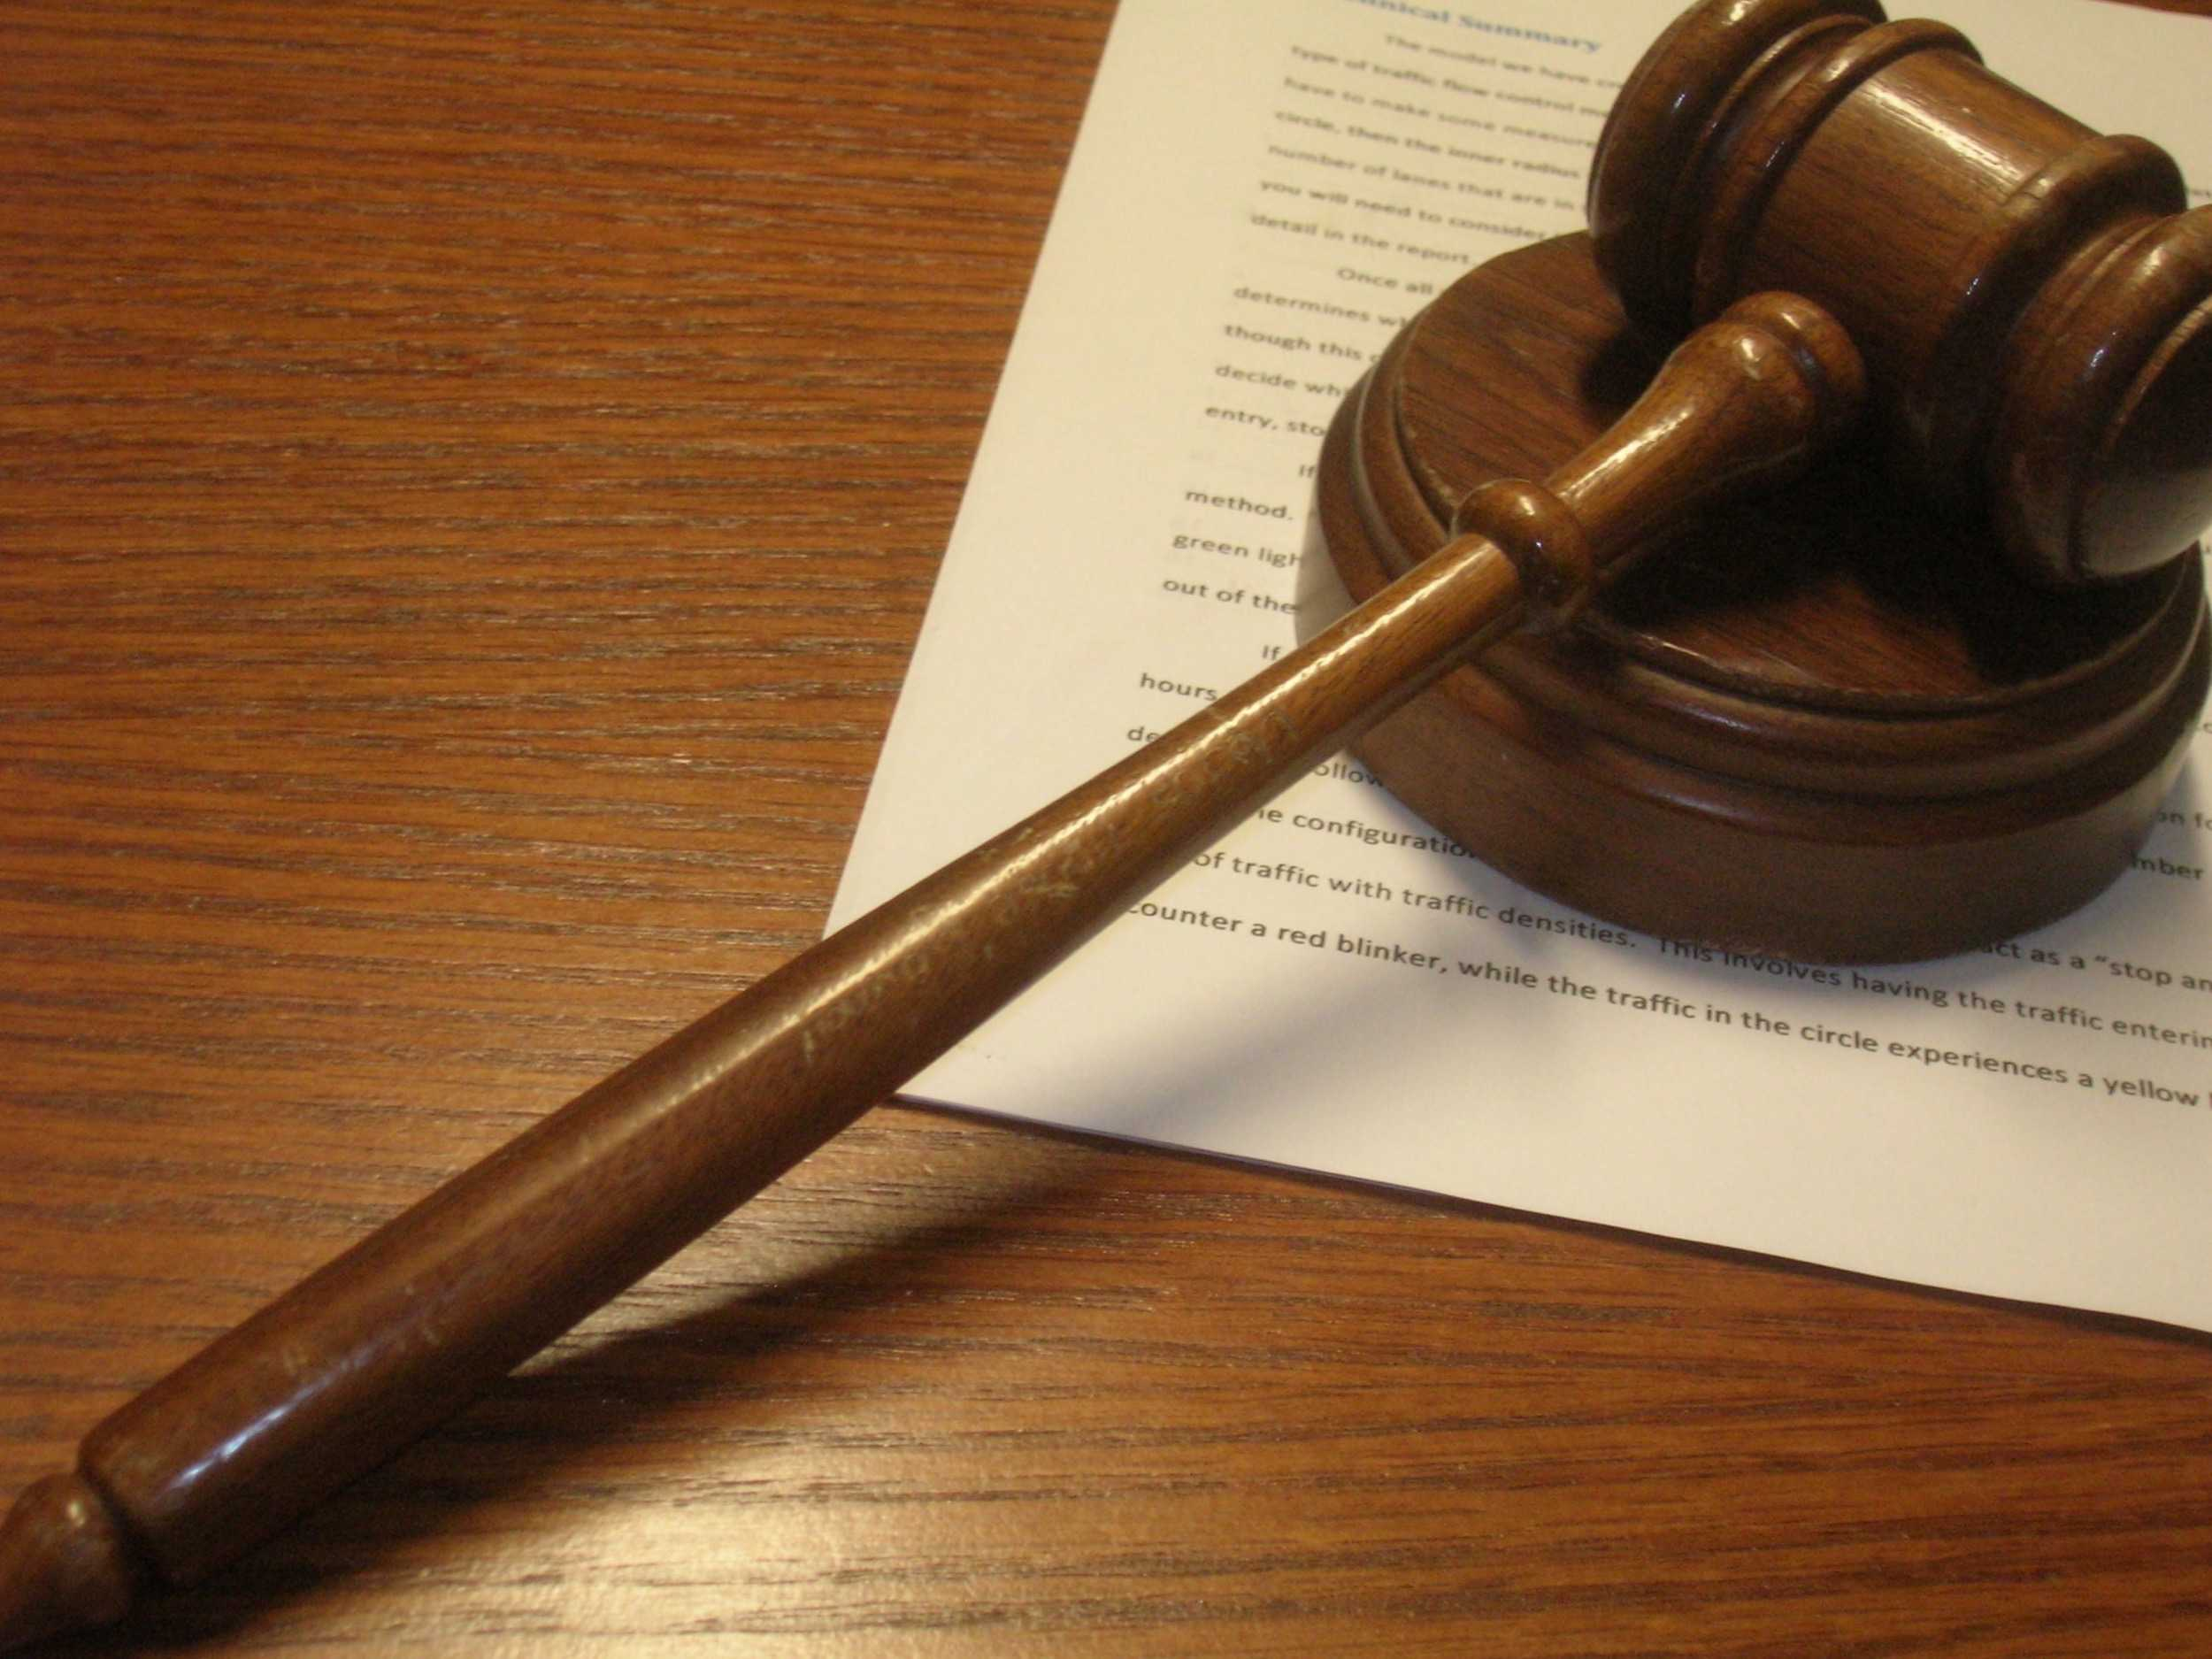 Two Warsaw orthopedic companies engaged in lawsuit over